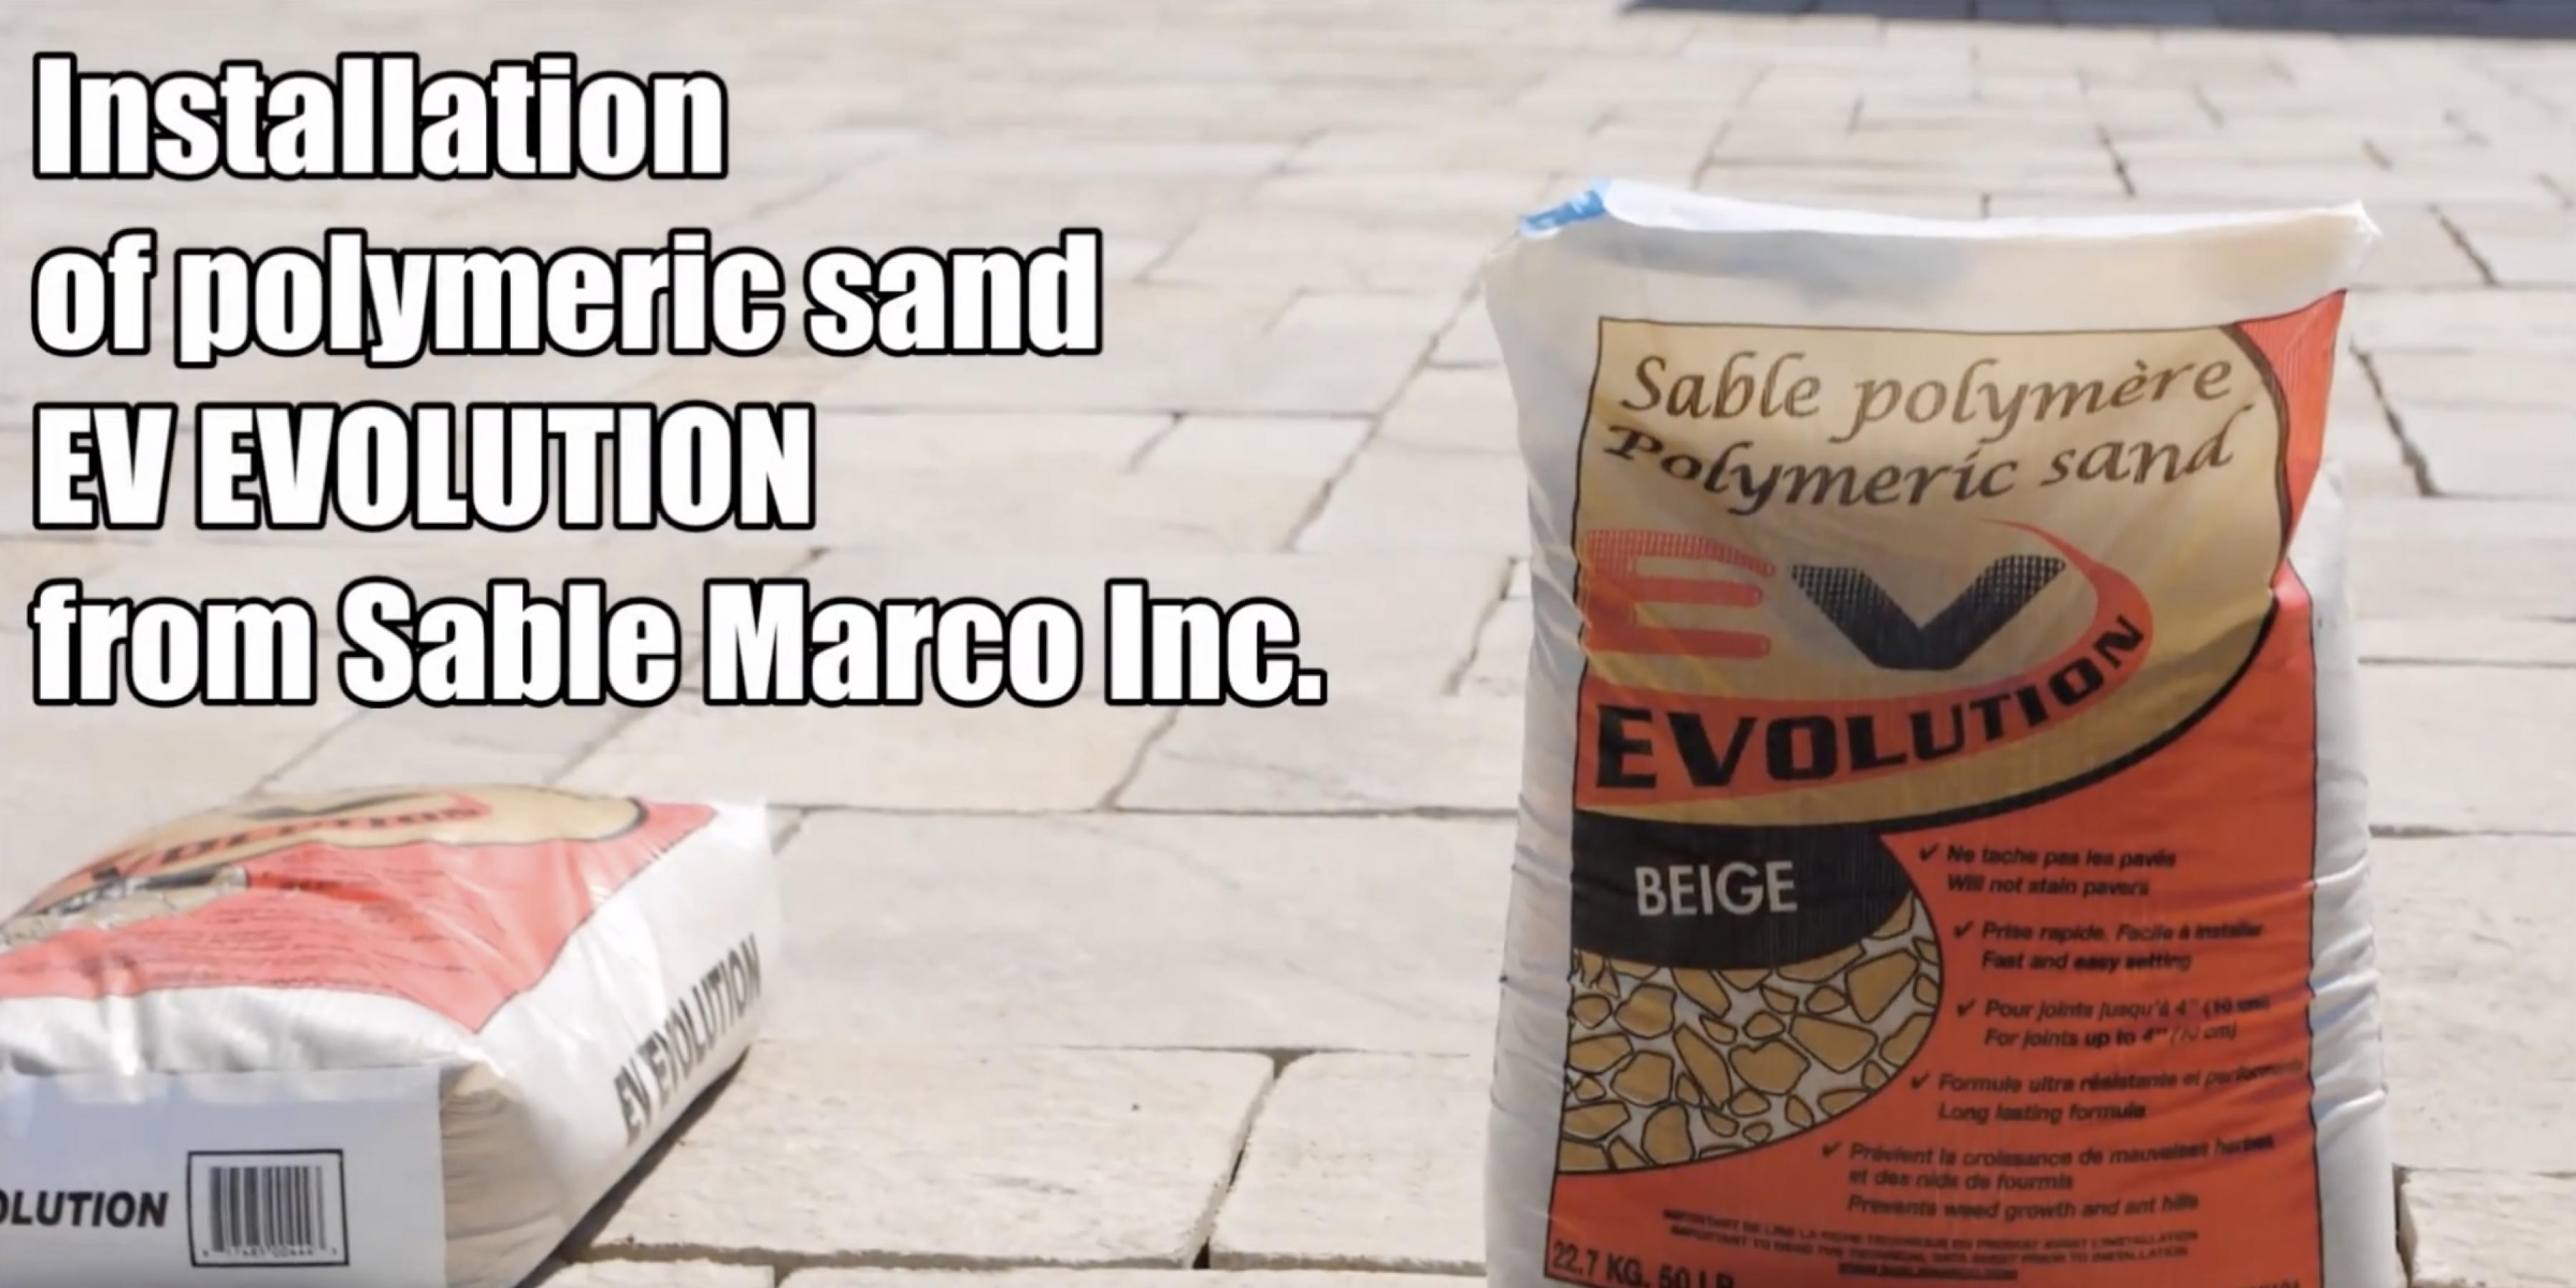 Installation of Polymeric Sand Ev Evolution from Sable Marco Inc.